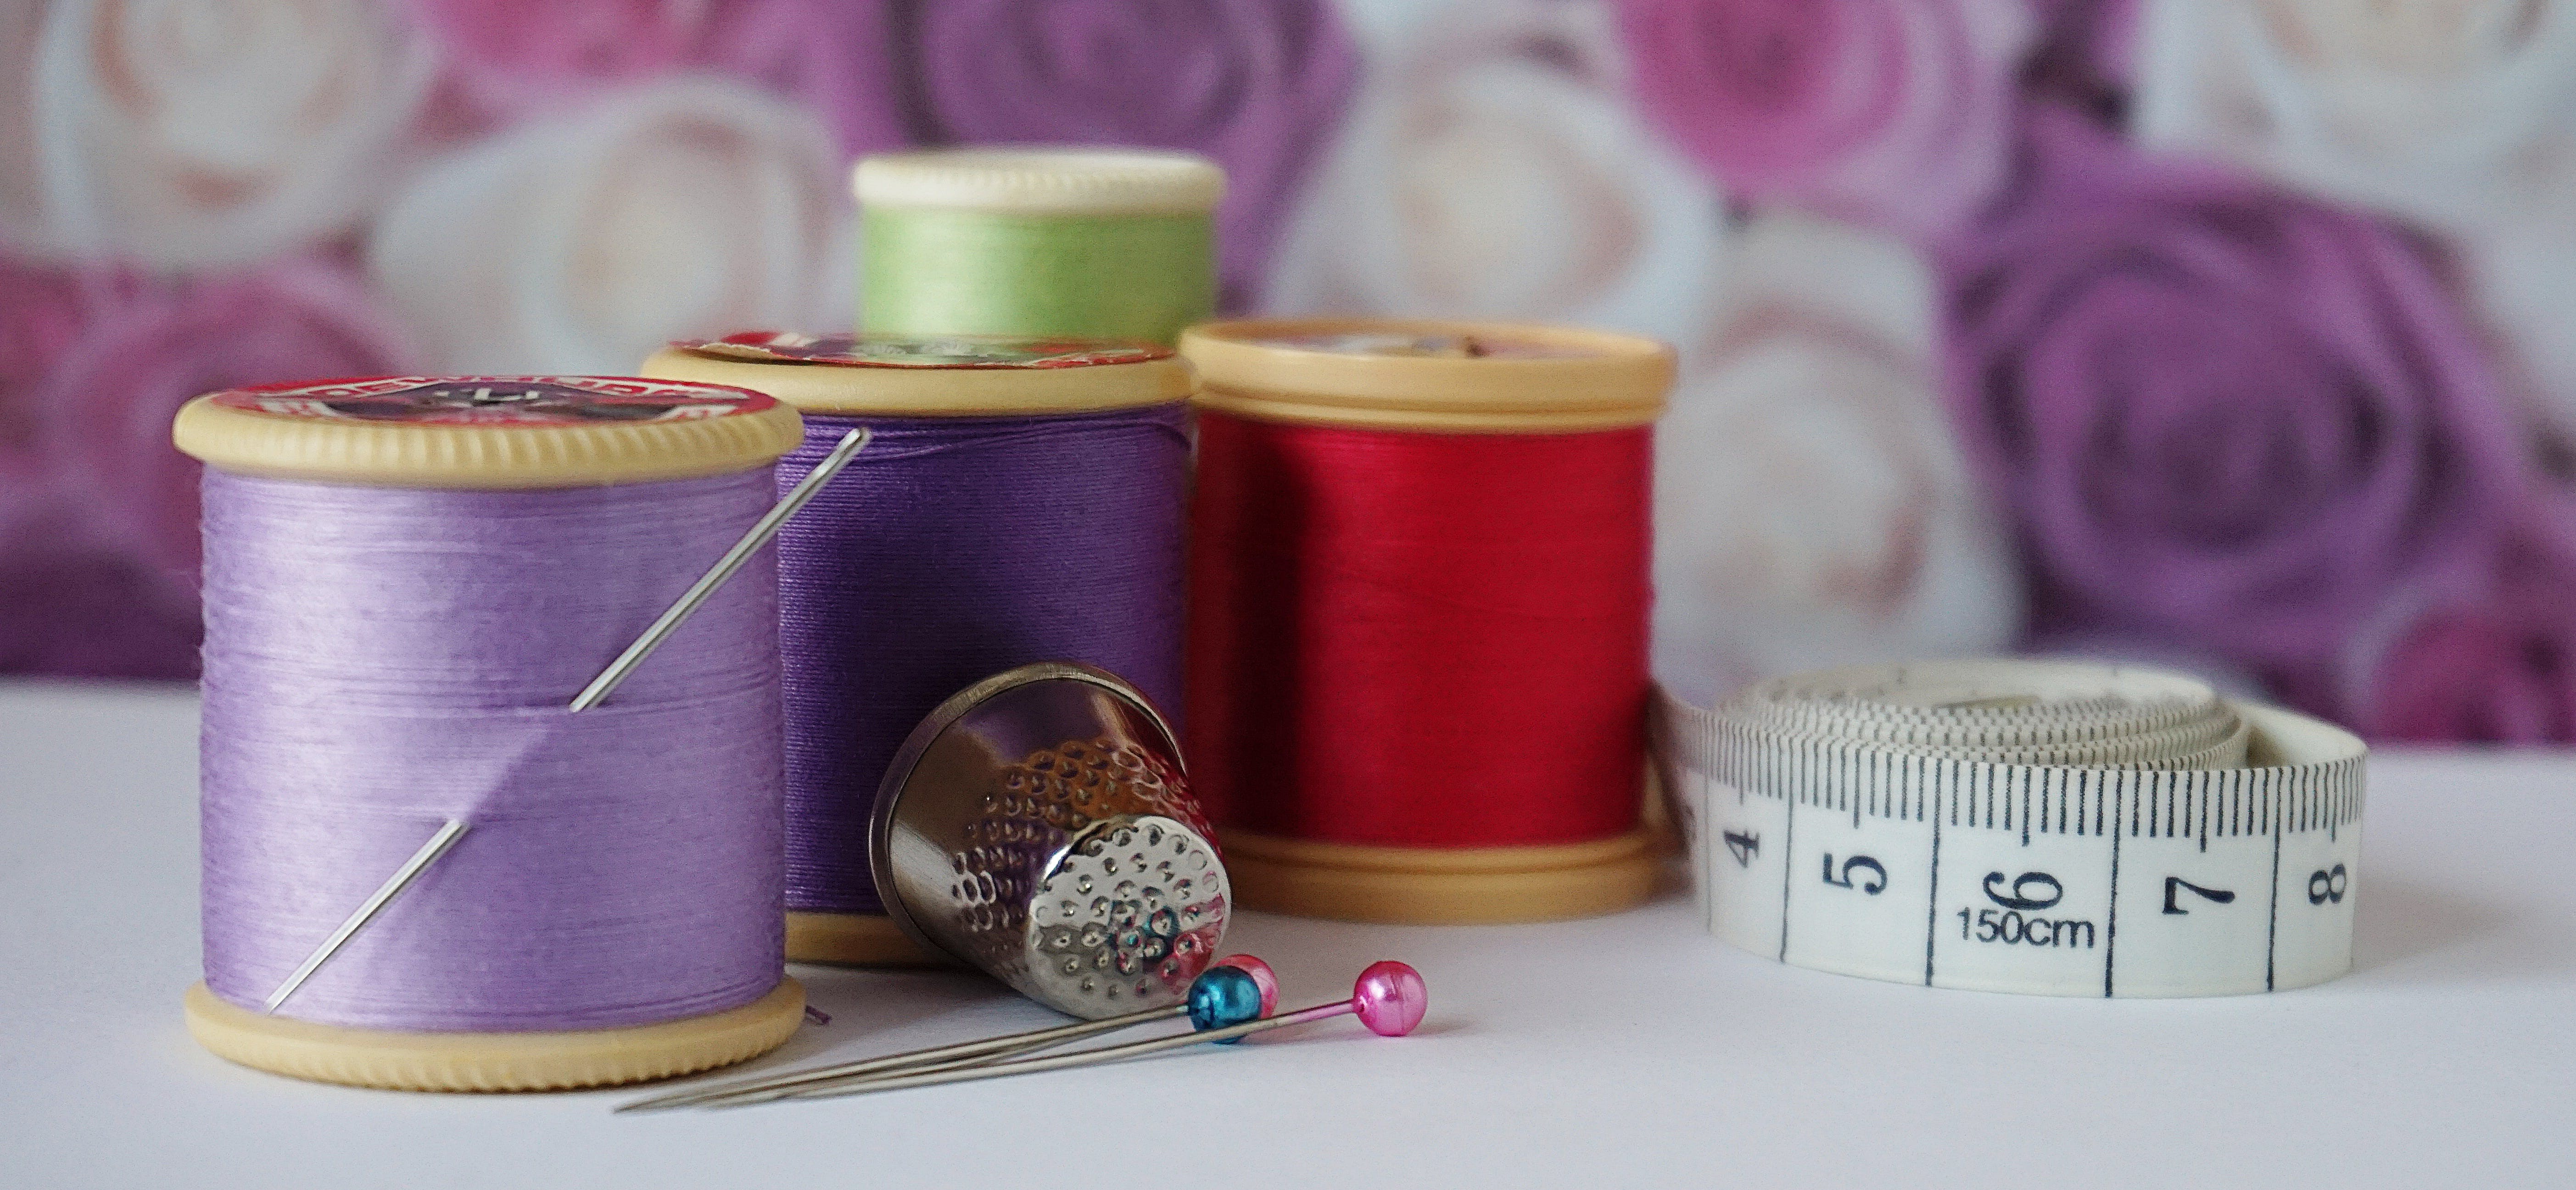 Free stock photo of cotton, cotton reels, cotton thread, crafts